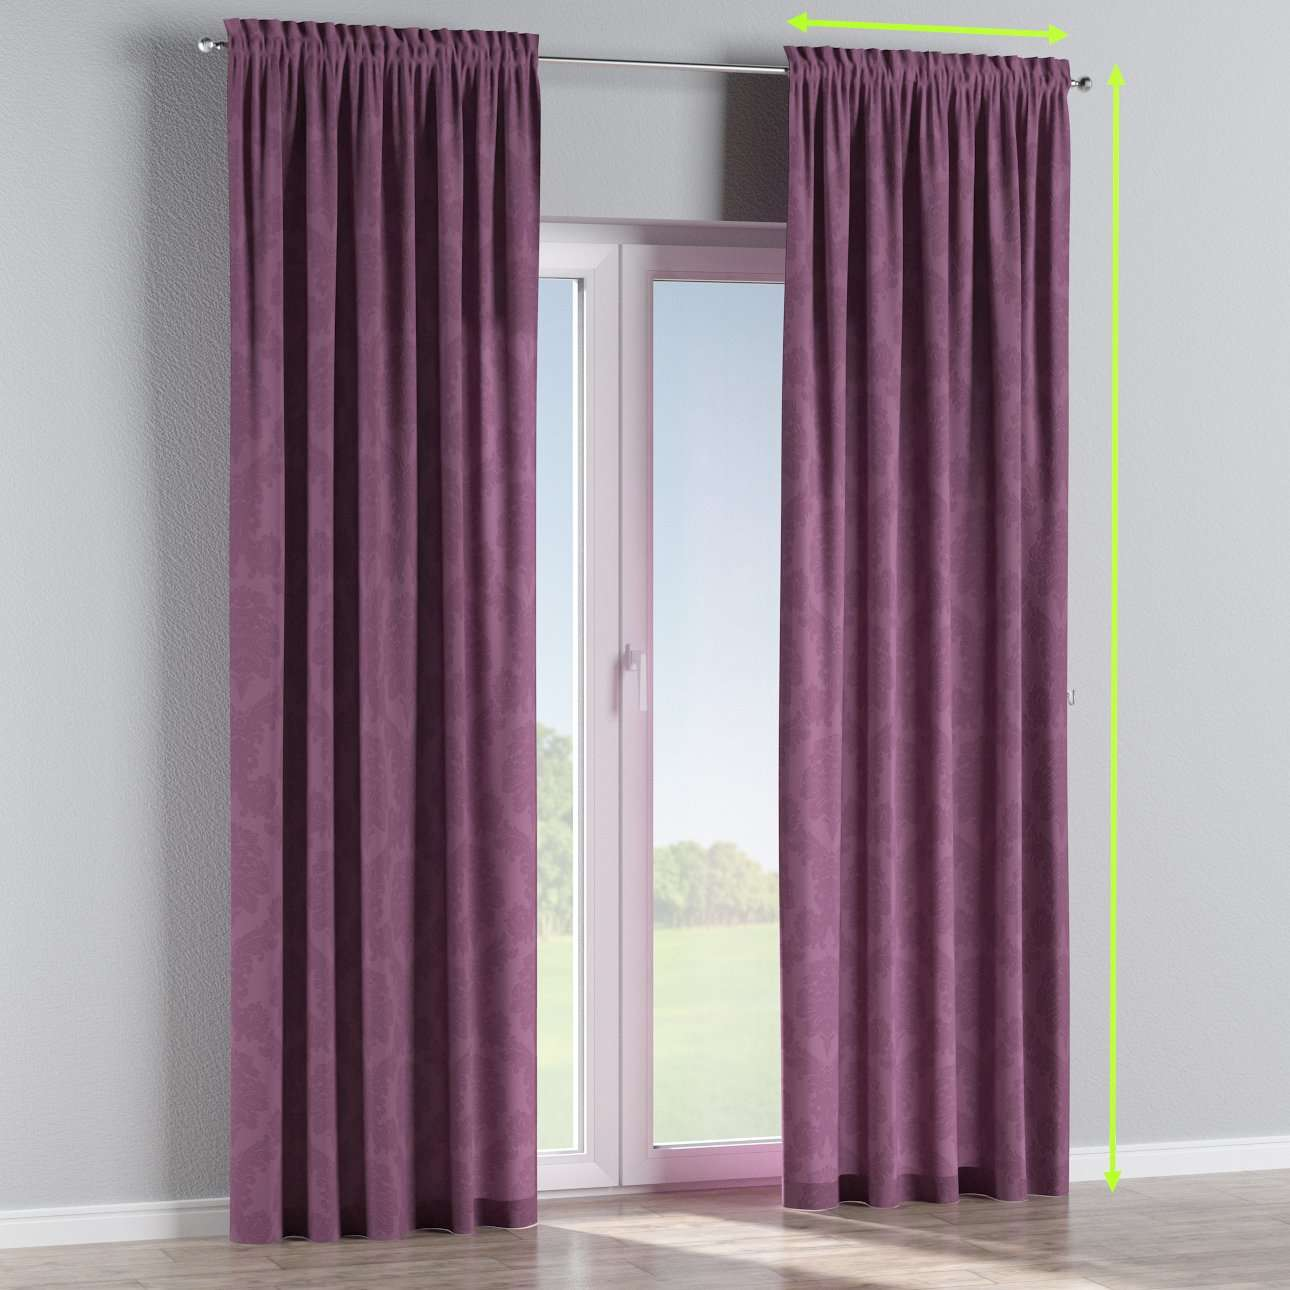 Slot and frill curtains in collection Damasco, fabric: 613-75